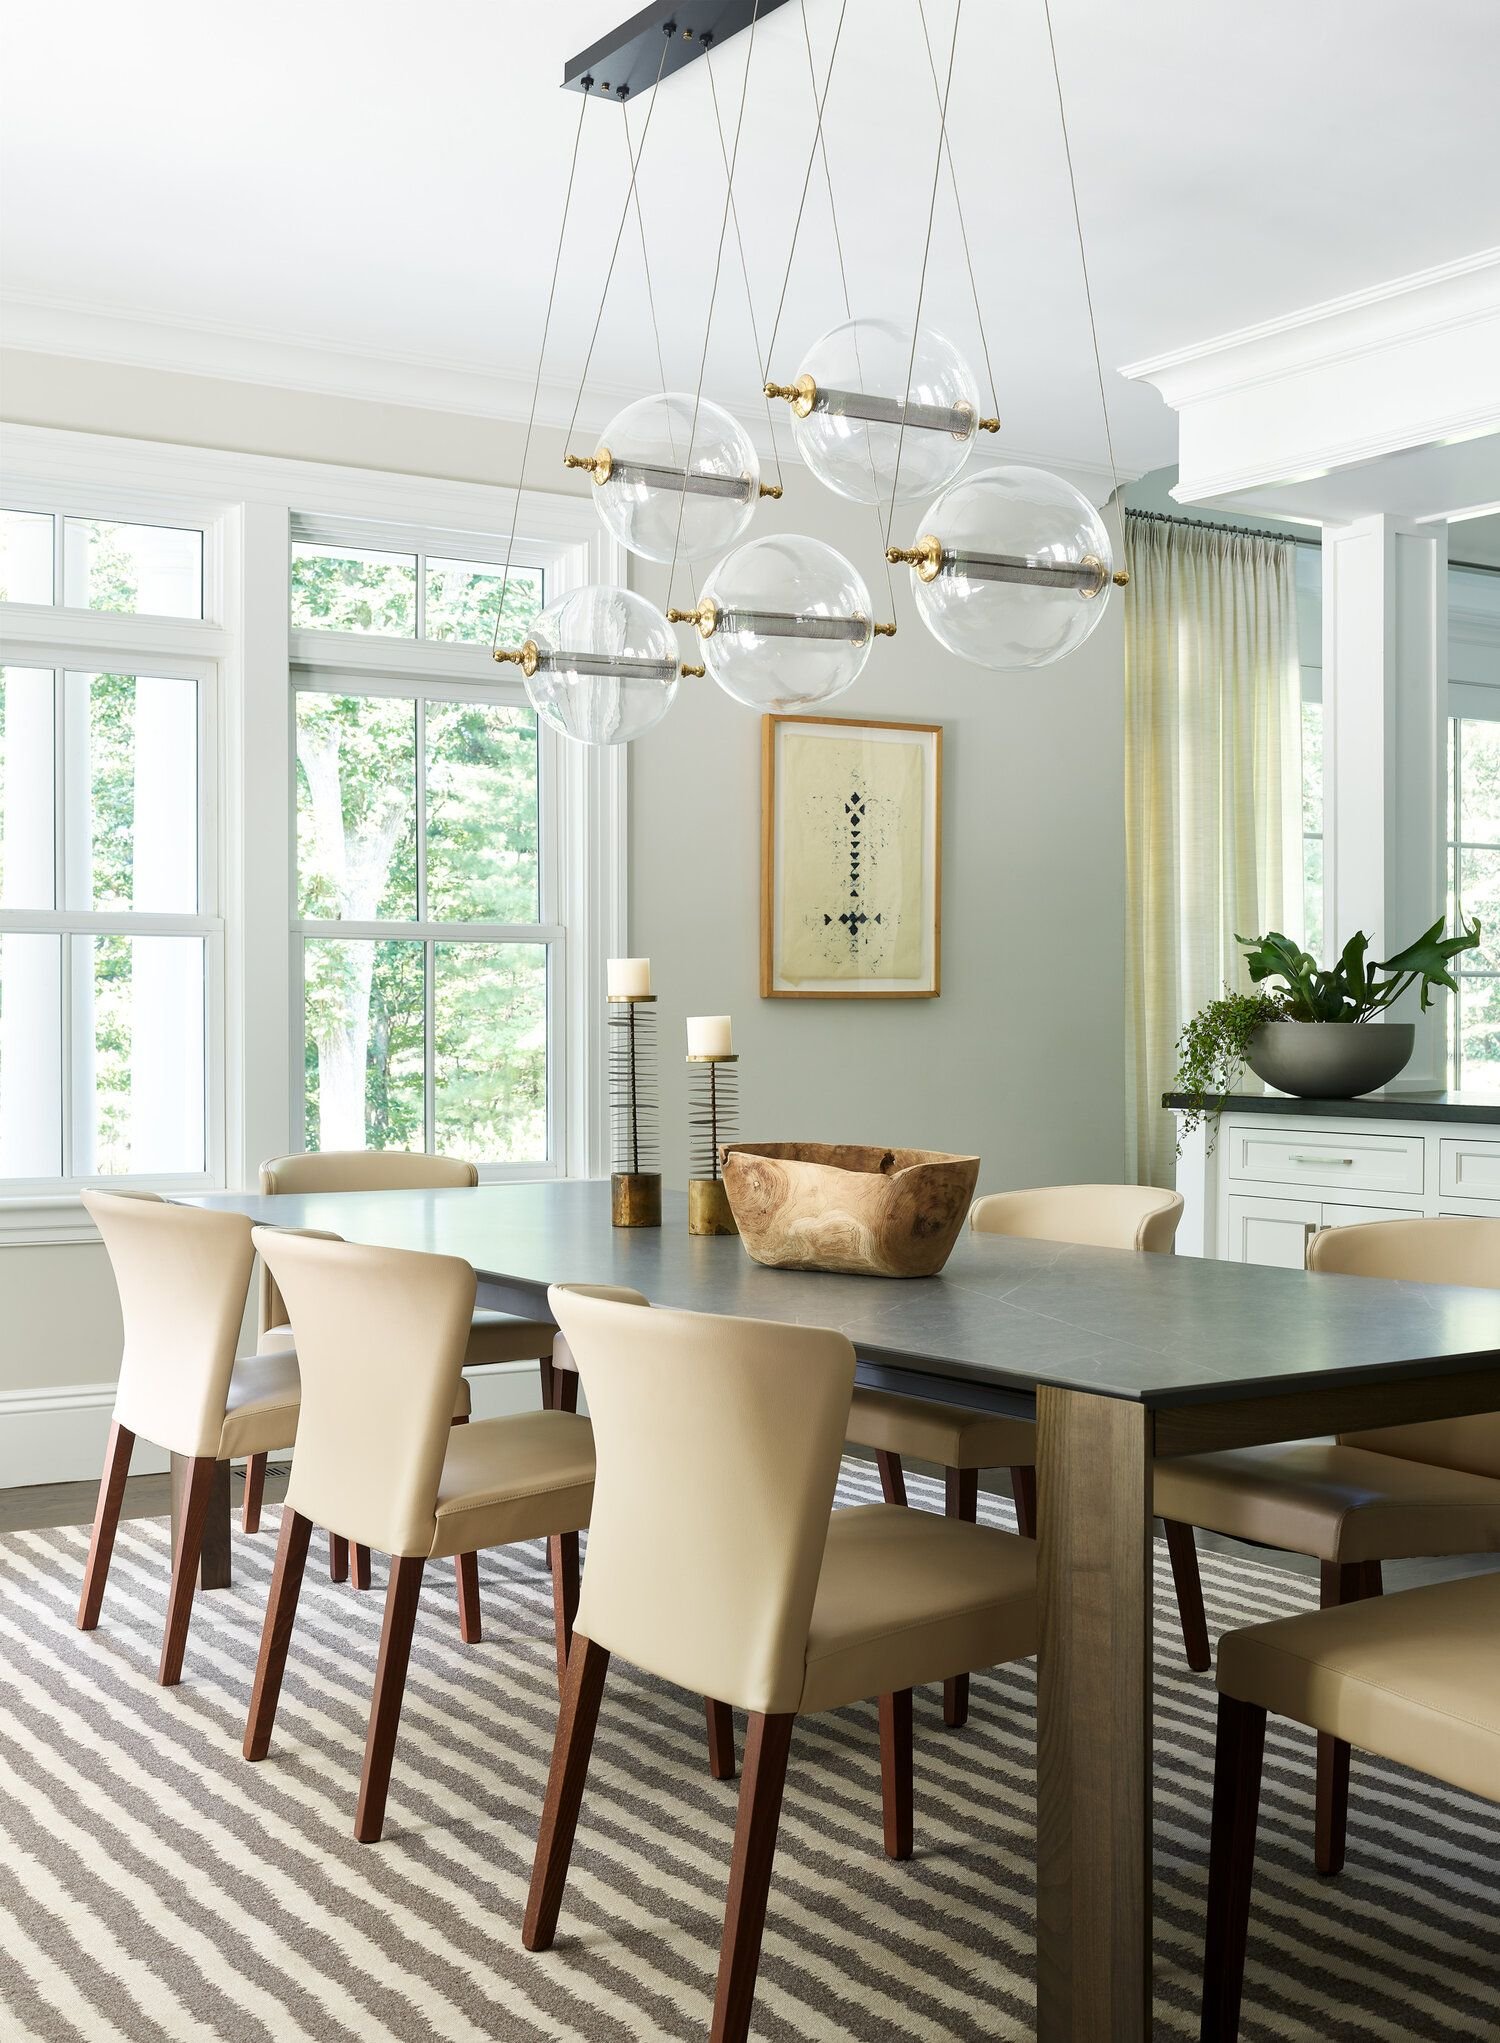 Dining Room | Modern | Chandelier #diningroom #diningroomdecor #diningroomdesign #diningroomideas #interiordesign #interiordesigntips #homedecor #homedecorideas